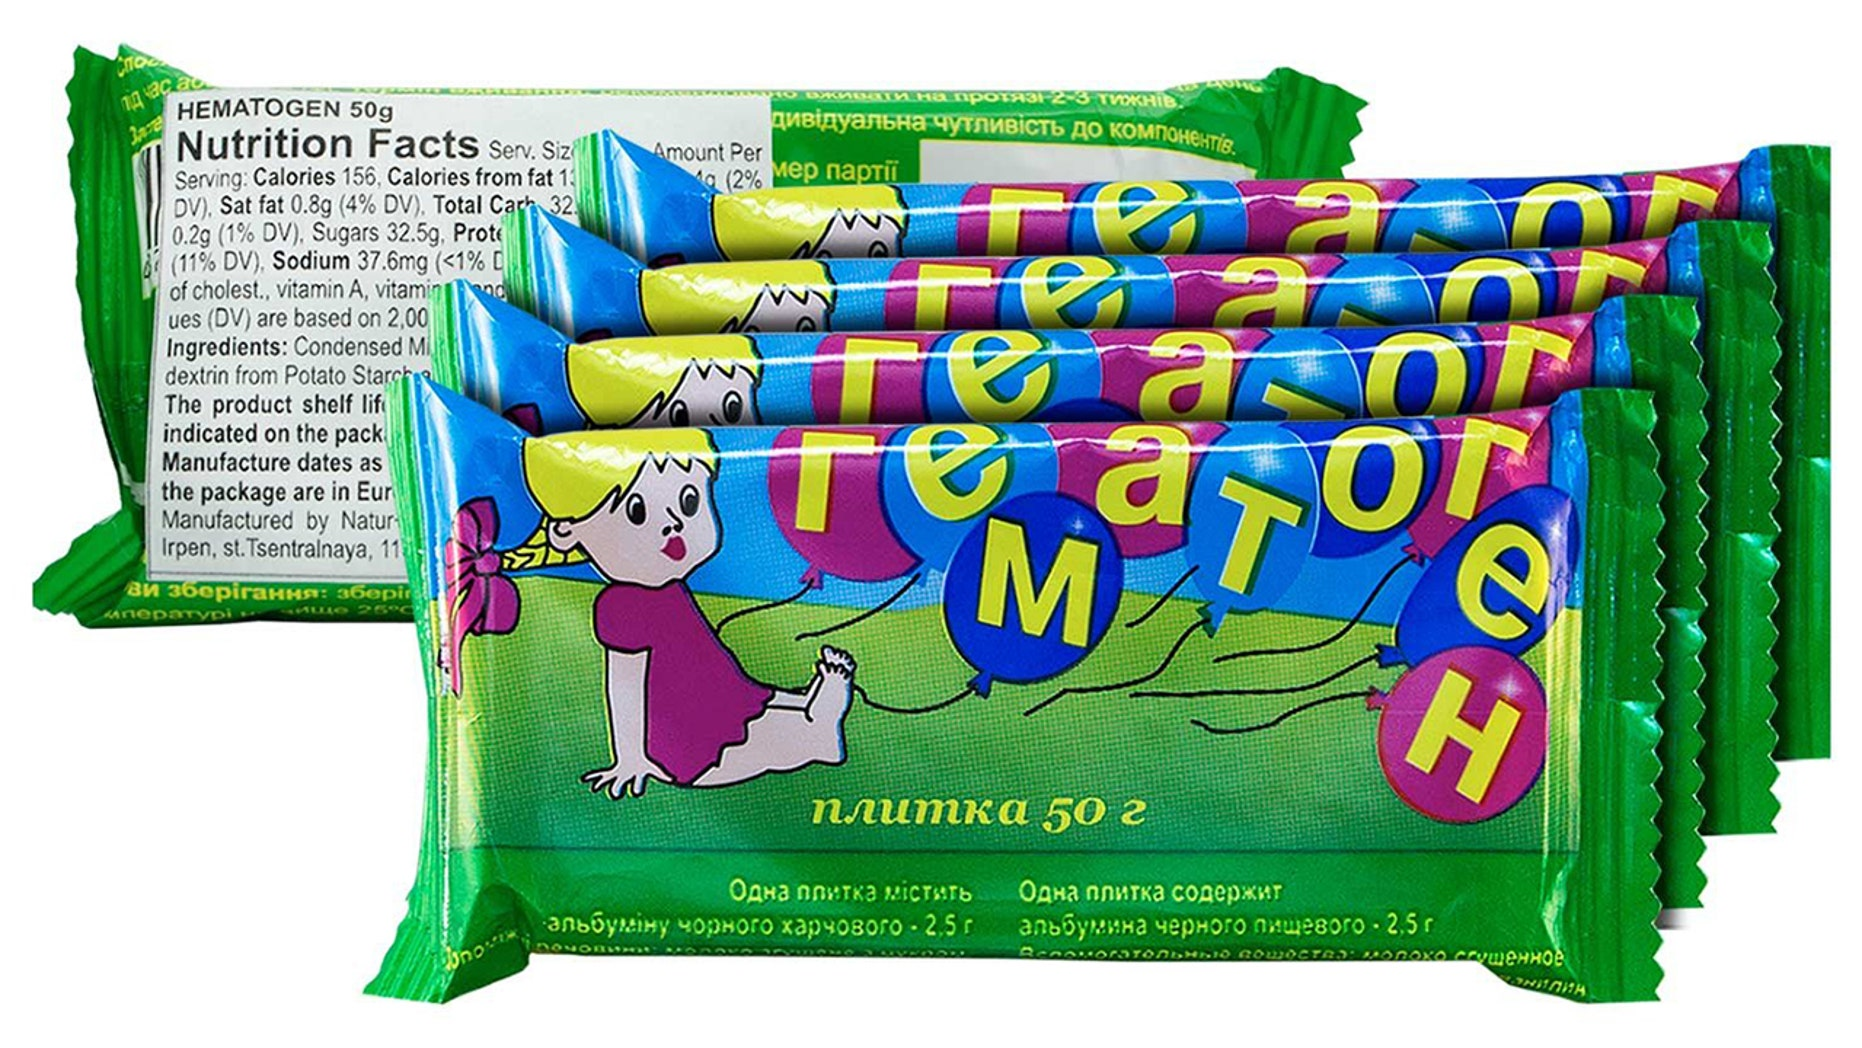 Hematogen — a chocolatey, chewy snack with an oddly metallic aftertaste — was the go-to snack for Russian kids before the fall of the Soviet Union.